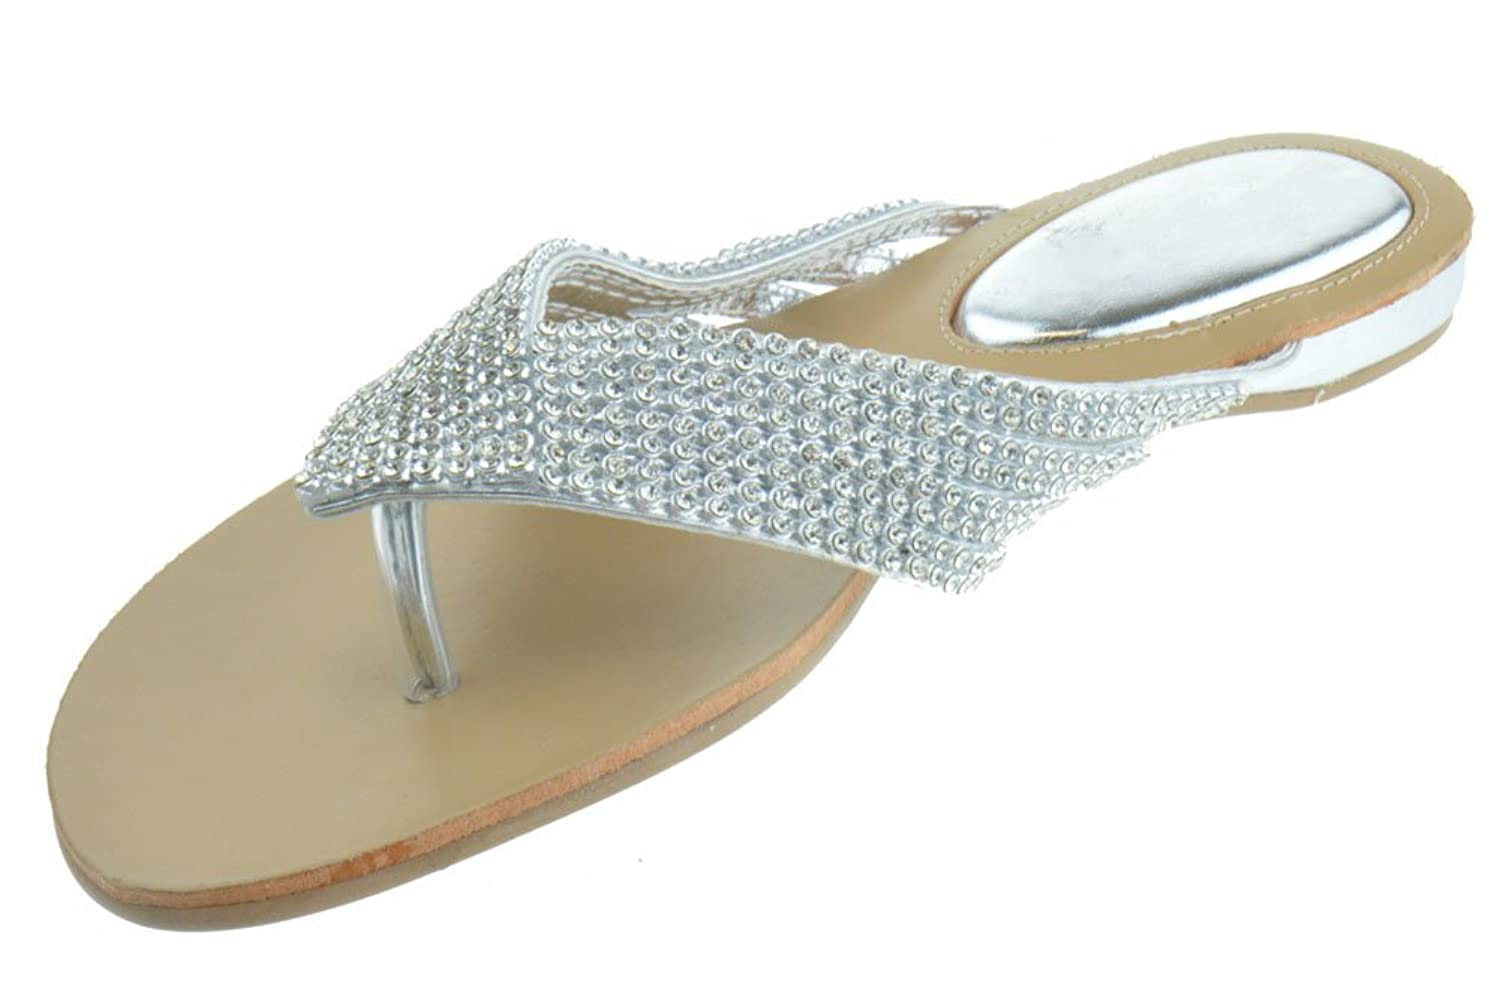 Women's sandals with bling - Amazon Com Kylie 09 Rhinestone Embellished Thong Flat Sandals Silver Flats